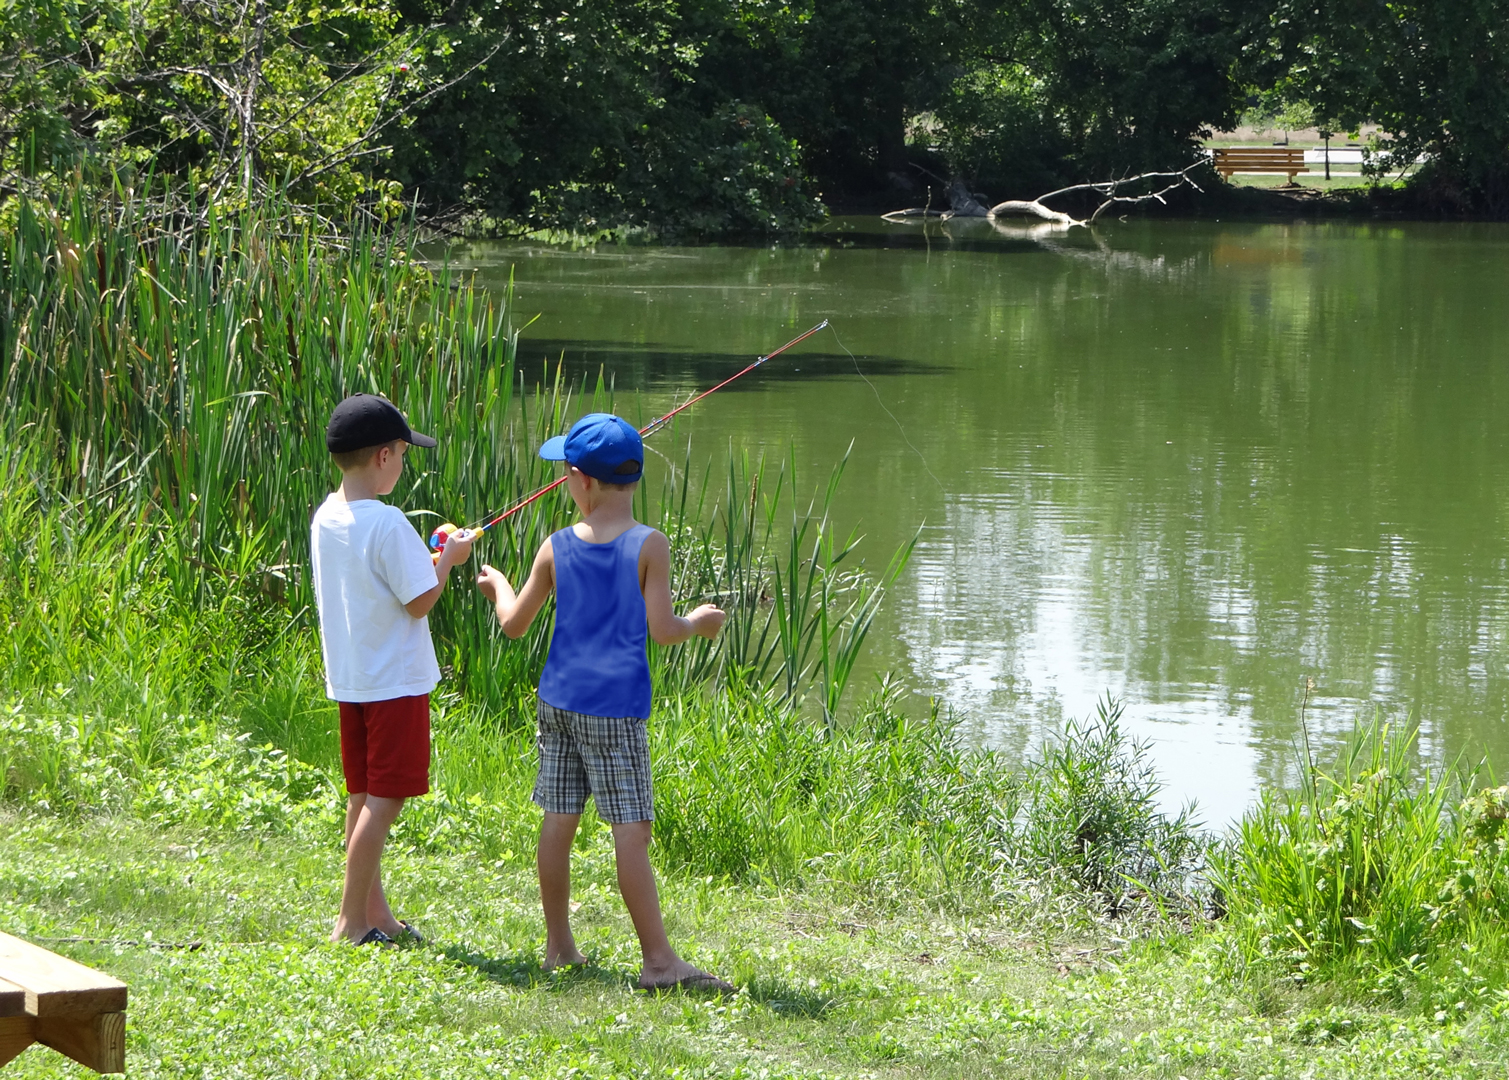 Two boys fish at Heron Pond in Three Creeks Metro Park